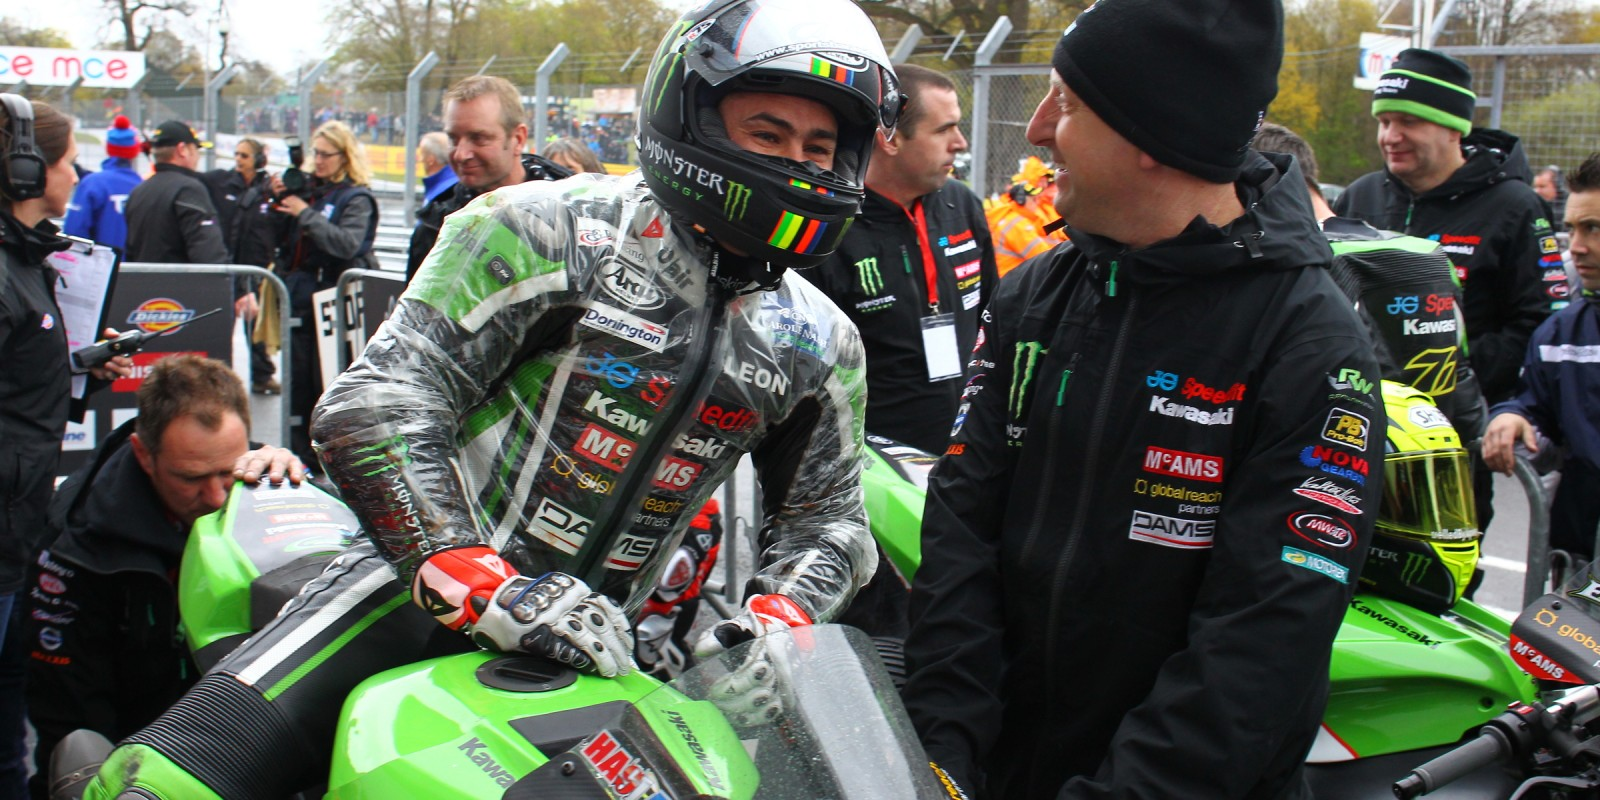 Leon Haslam at round two Oulton Park, Round Two